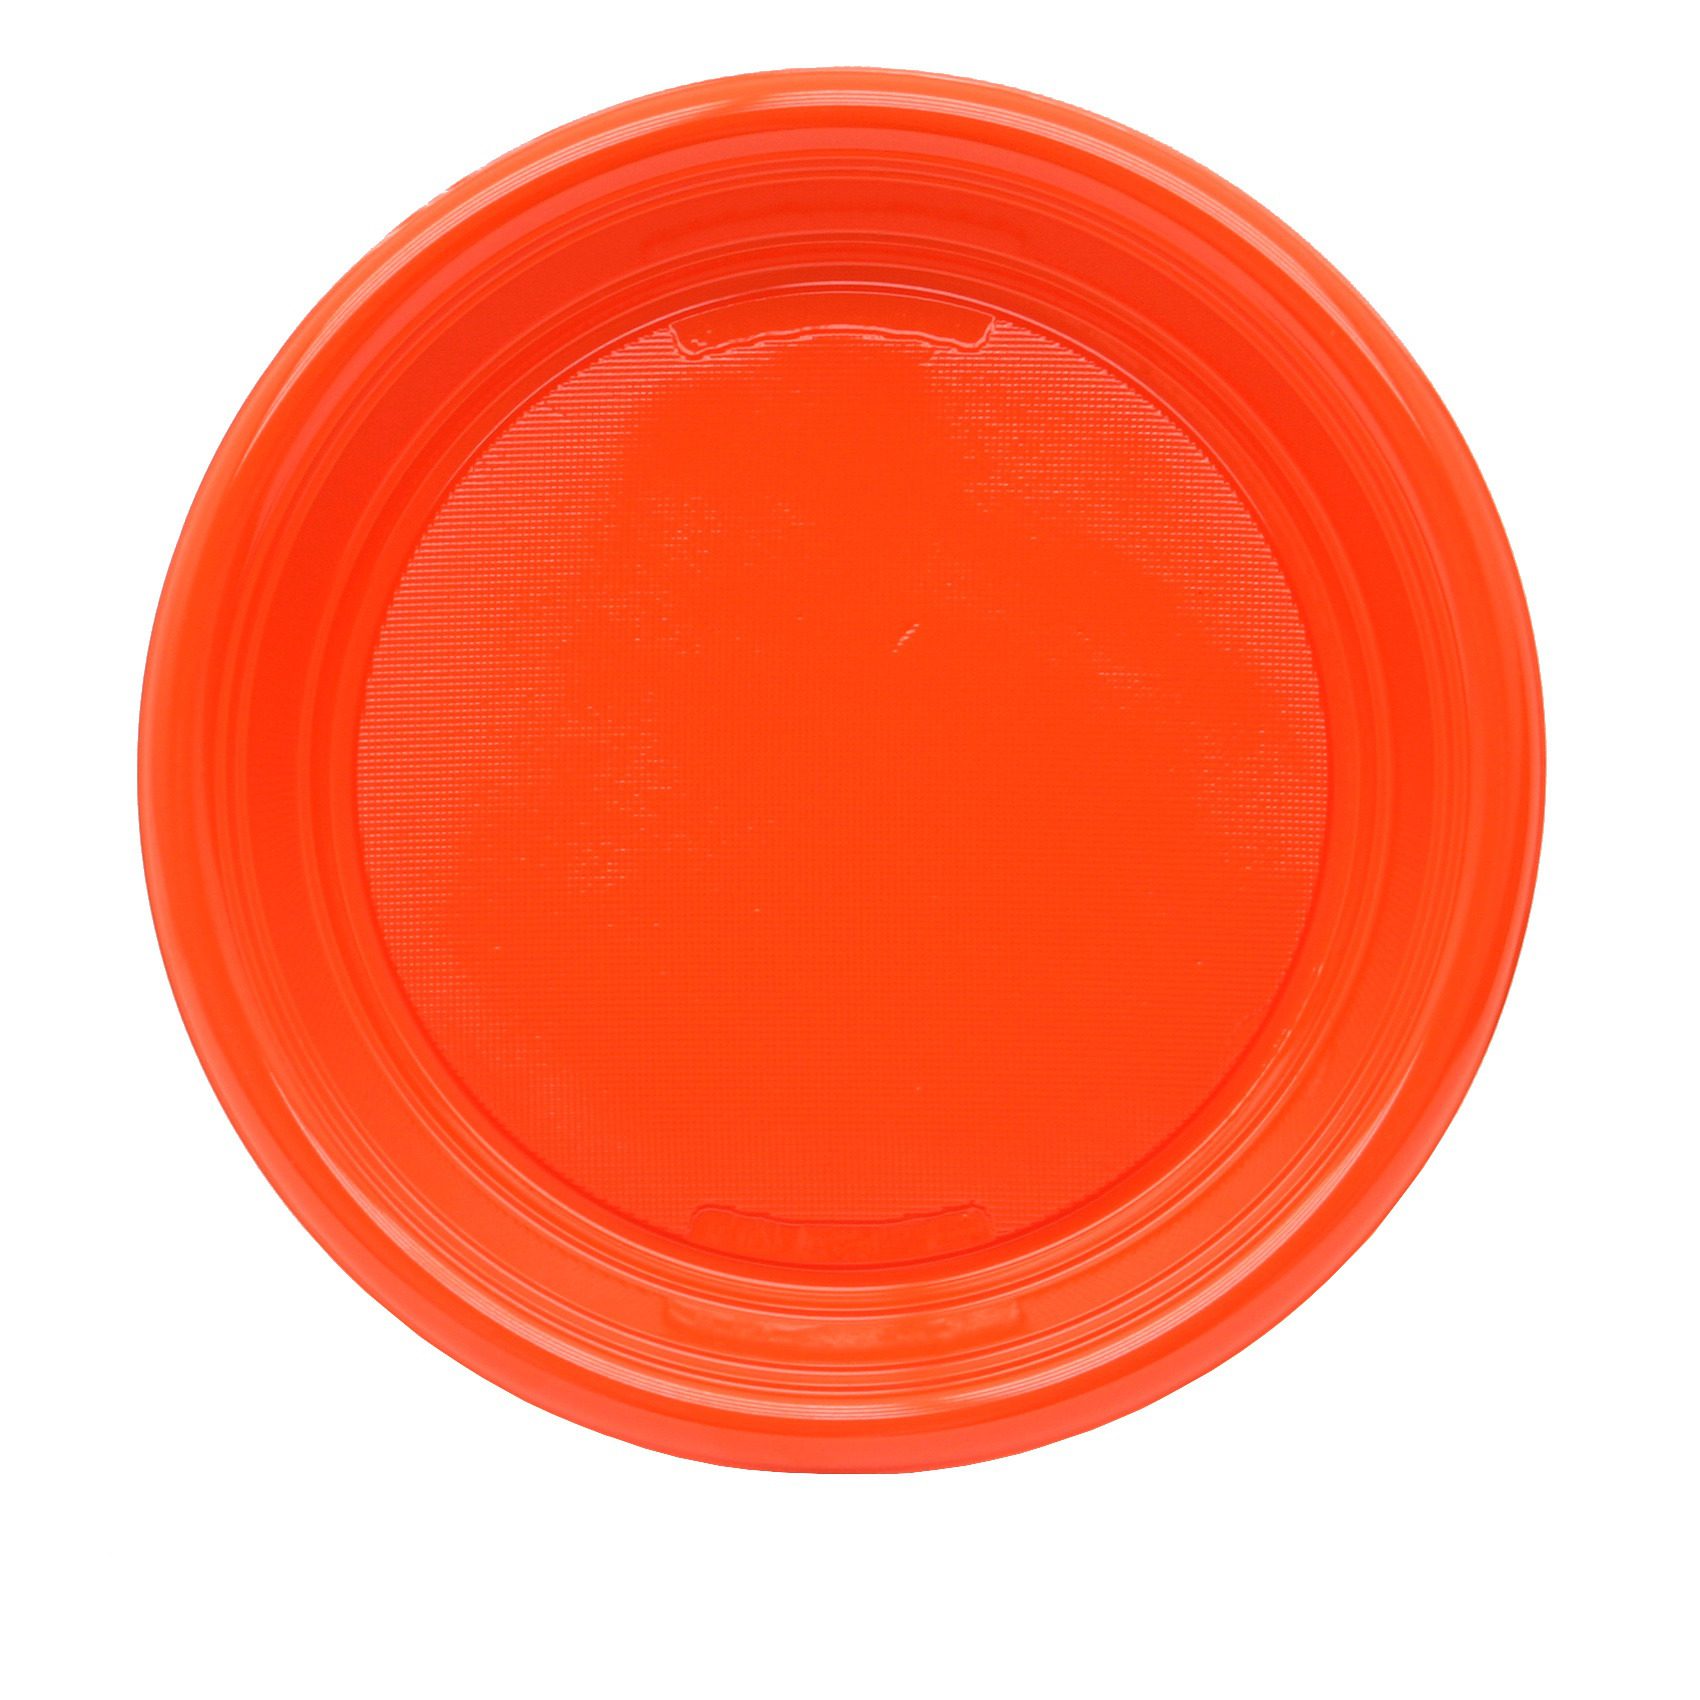 30 Party-Teller Plastik rund 22 cm orange